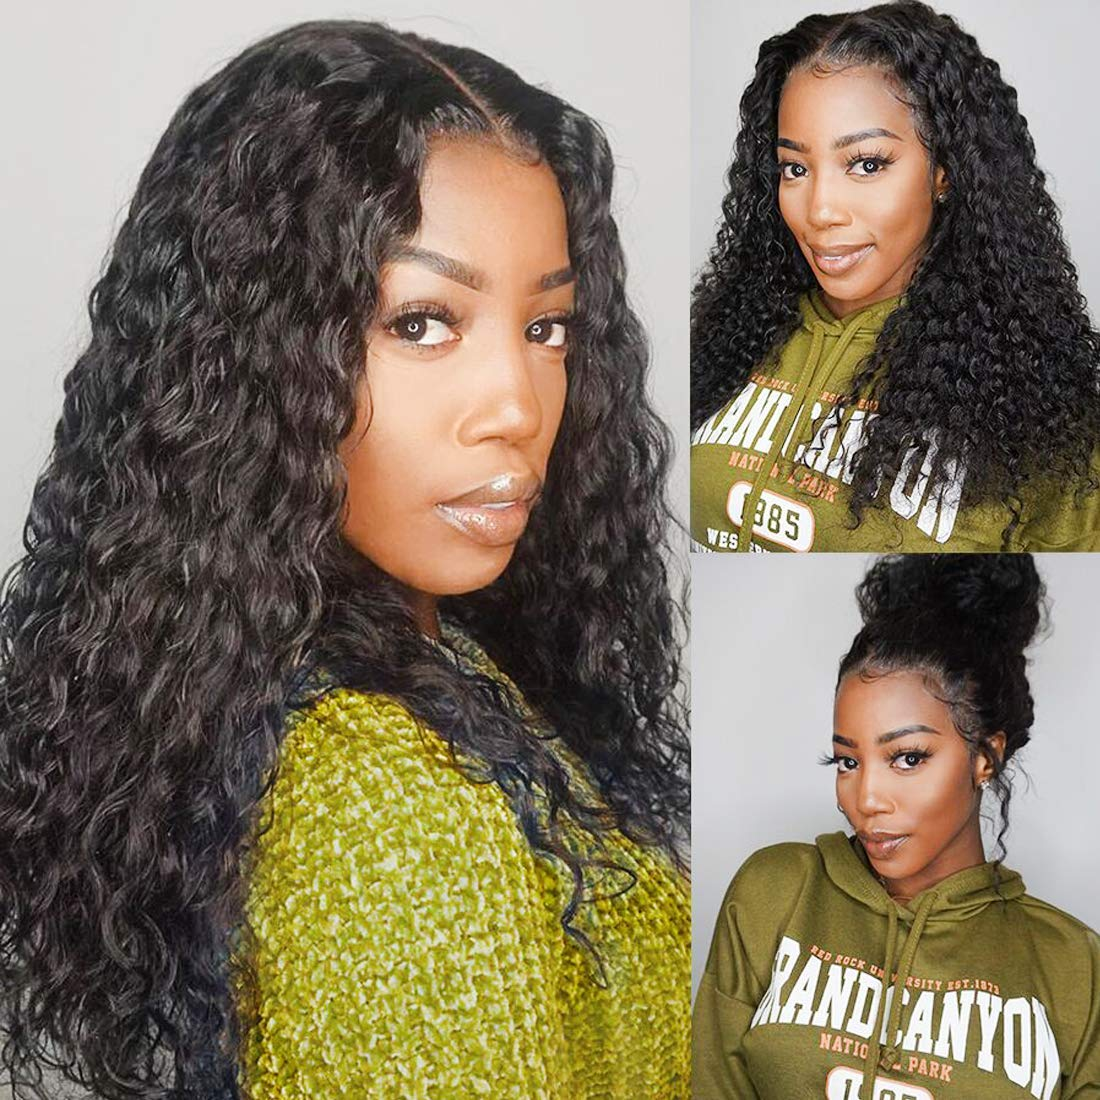 13x6 Lace Front Wig Water Wave Human Hair Wig For Black Women Glueless 130 Density Short Pre Plucked With Baby Hair 6inch deep part Wig Wet And Wavy Malaysian Cheap Wigs 12 Inch